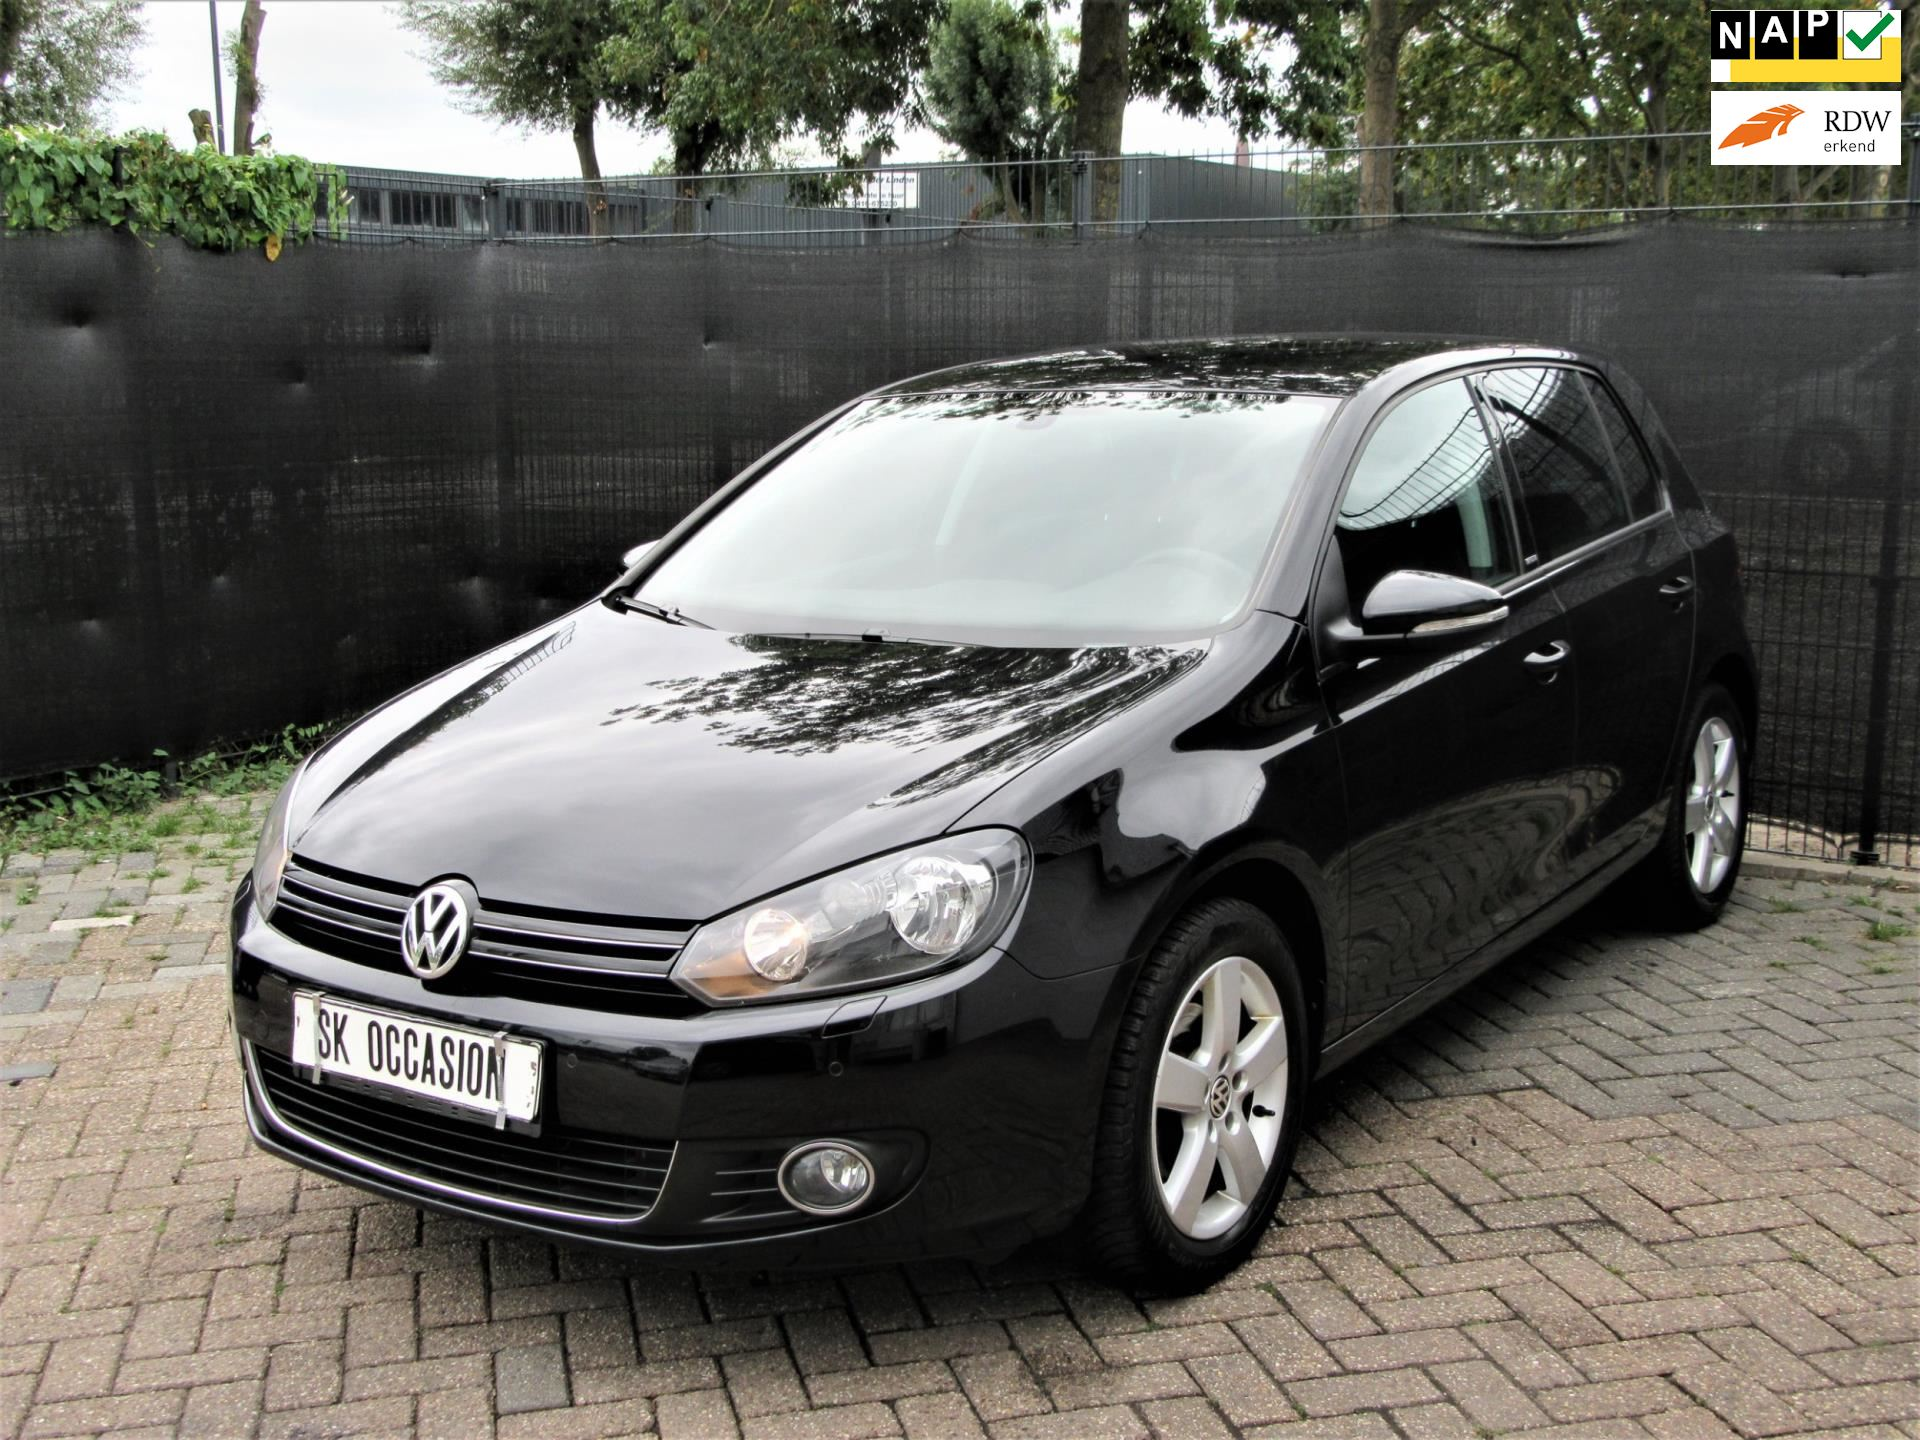 Volkswagen Golf occasion - Sk Occasion